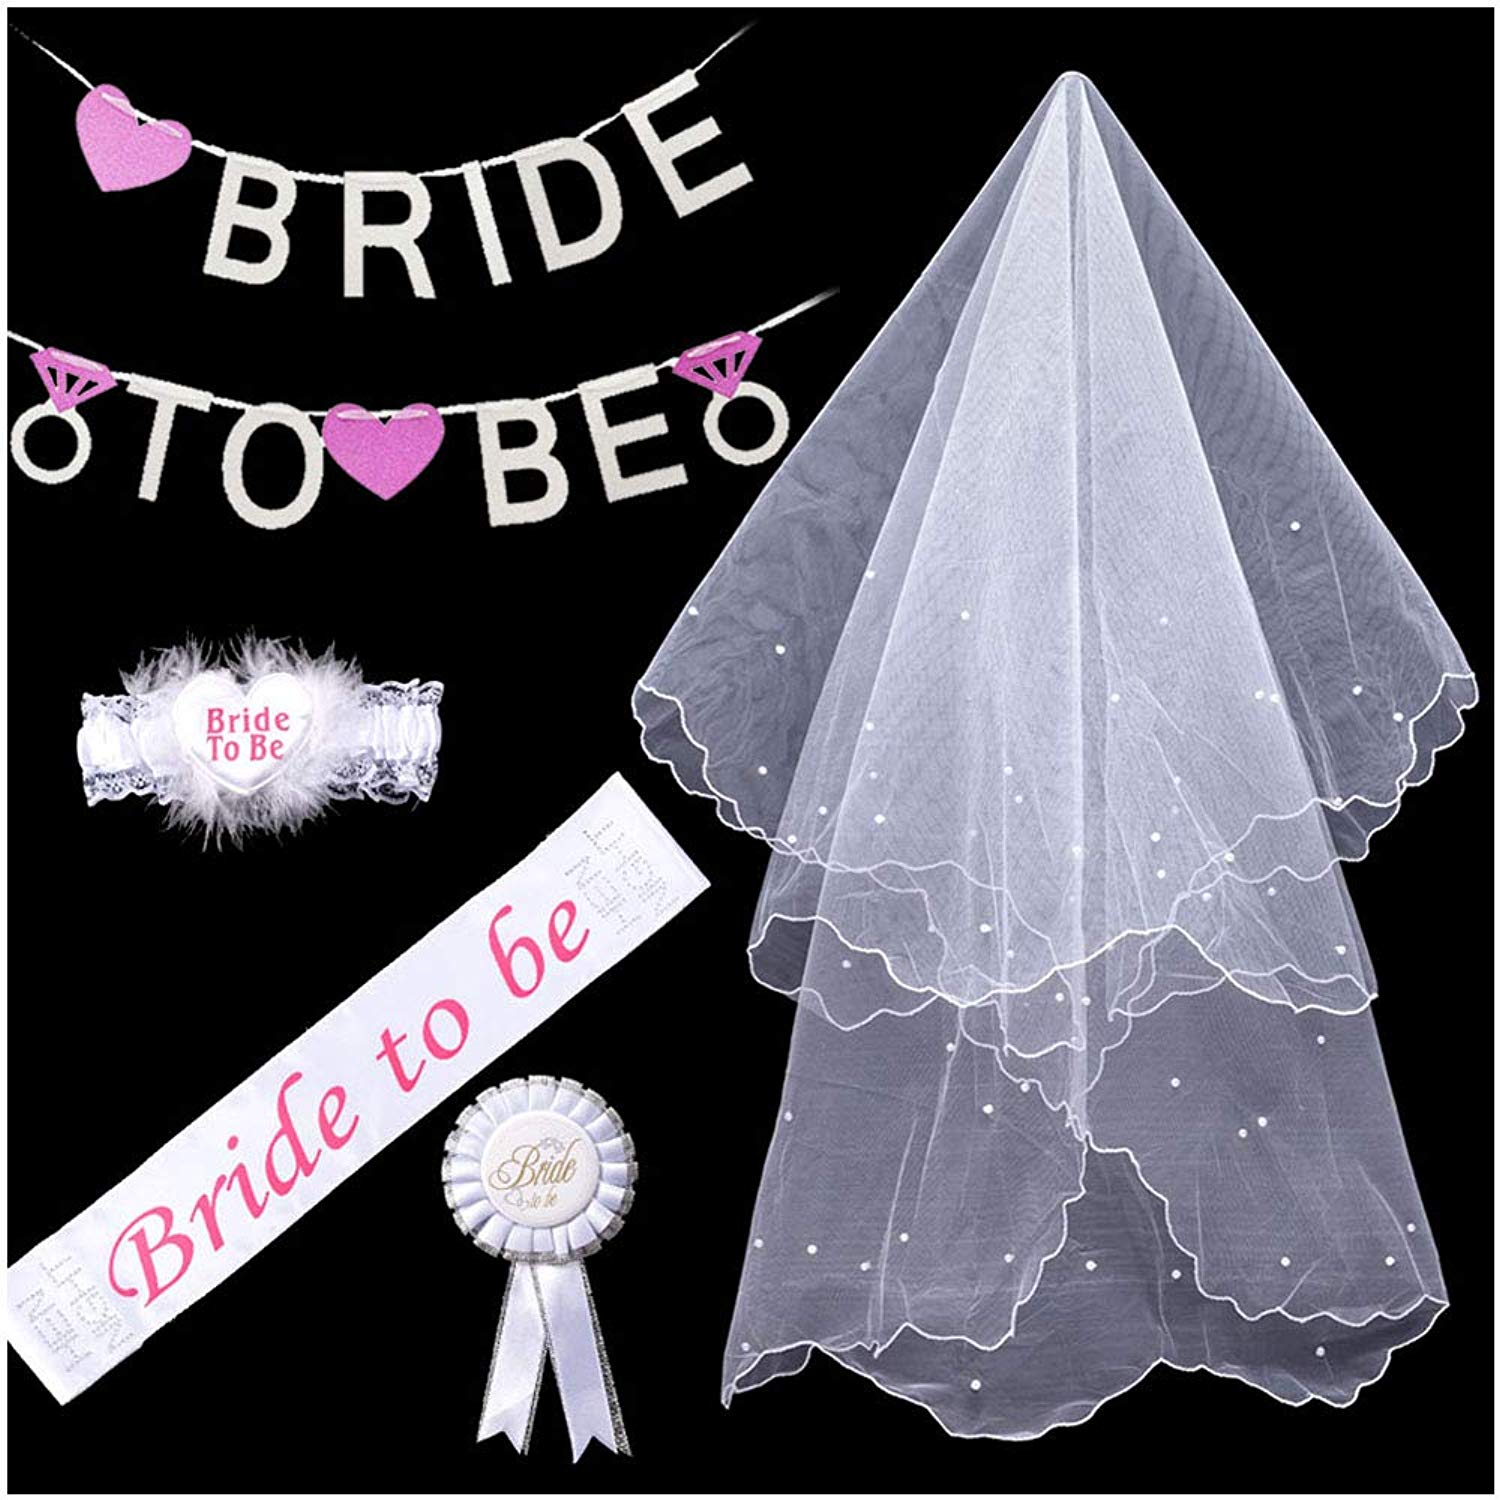 Glitter Rhinestone Bride to Be Sash and Veil Tiara Bride to Be Satin Sash Hen Party Favors Supplies Wedding Decorations White Double Ribbon Edge Center Cascade Bridal Wedding Veil with Comb